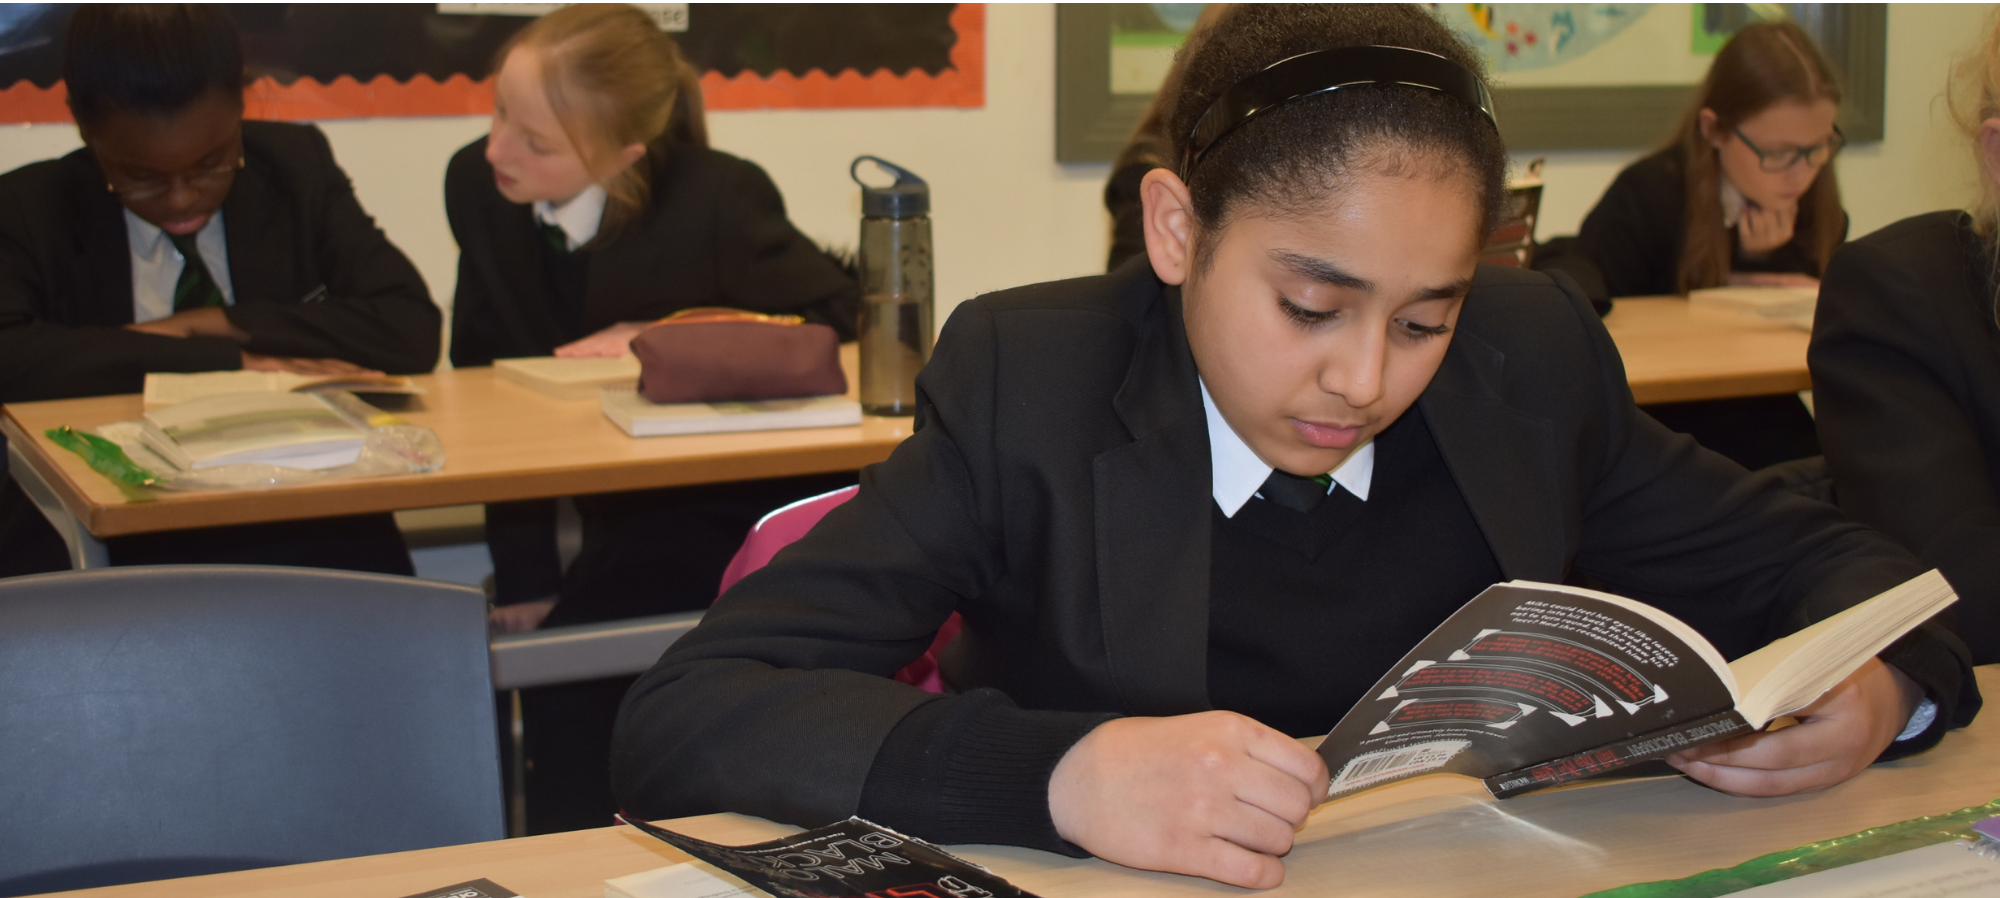 Pupils have finished their first book as part of their new timetabled reading lessons